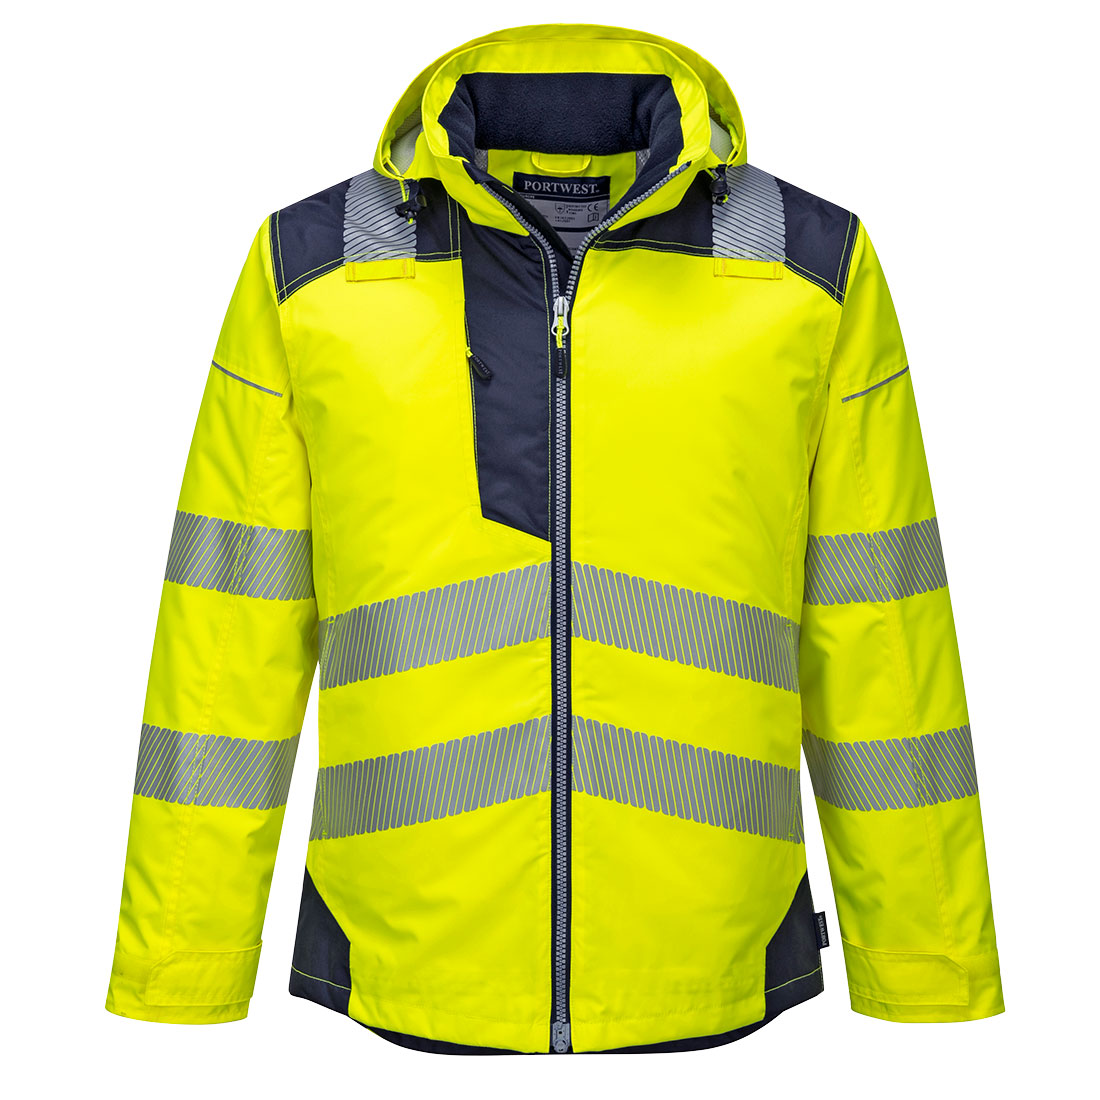 PW3 Hi-Vis Winter Jacket Yellow 3 XL